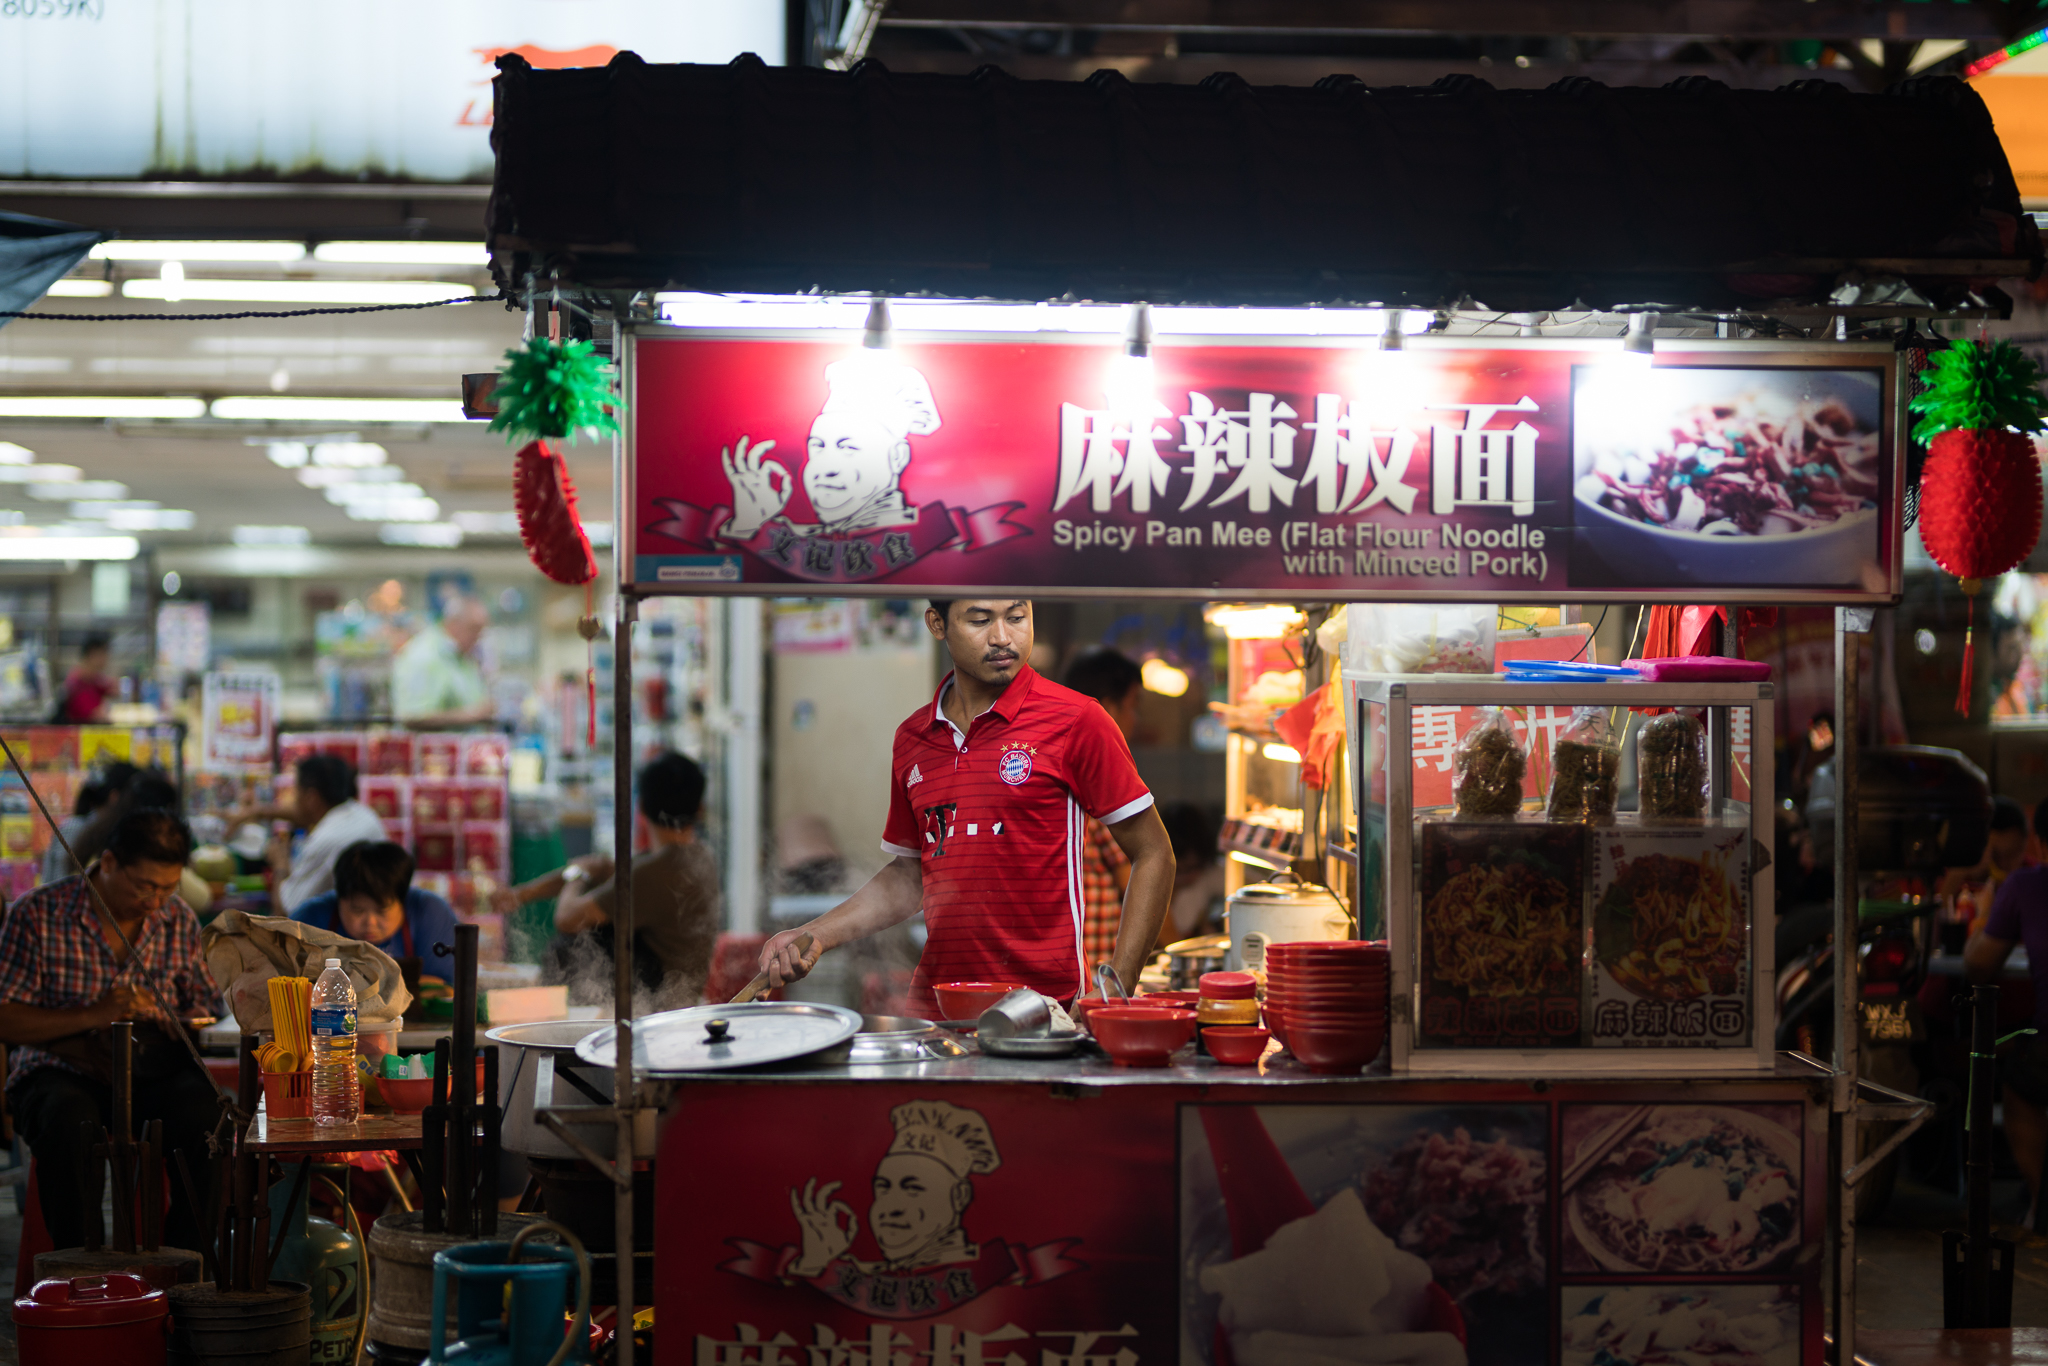 We went to this stall almost every night - dried beef noodles. Delicious and filling, for only $2